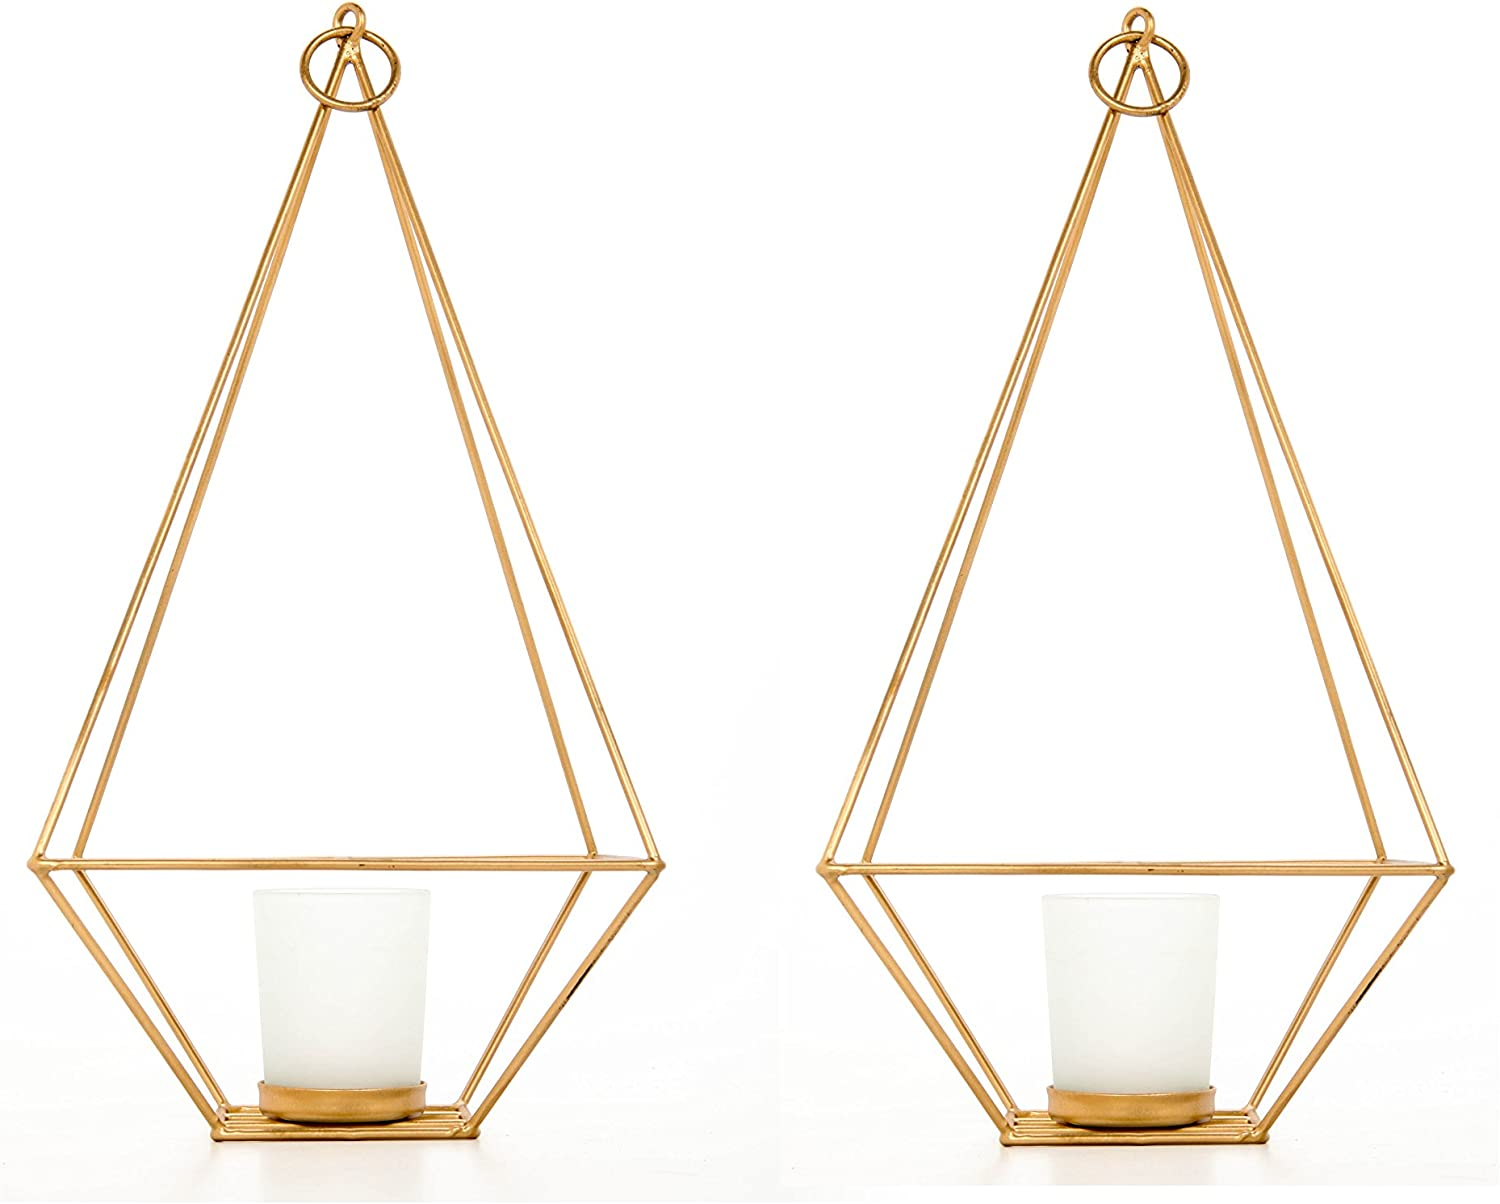 """Hosley Set of 2 Gold Finish Tealight/Votive Holder Lantern with Votive Frosted Candle Holder- 11.5"""" High. Ideal Gift for Weddings, Special Events, Parties LED Candle Gardens, Spa, Aromatherapy O4"""